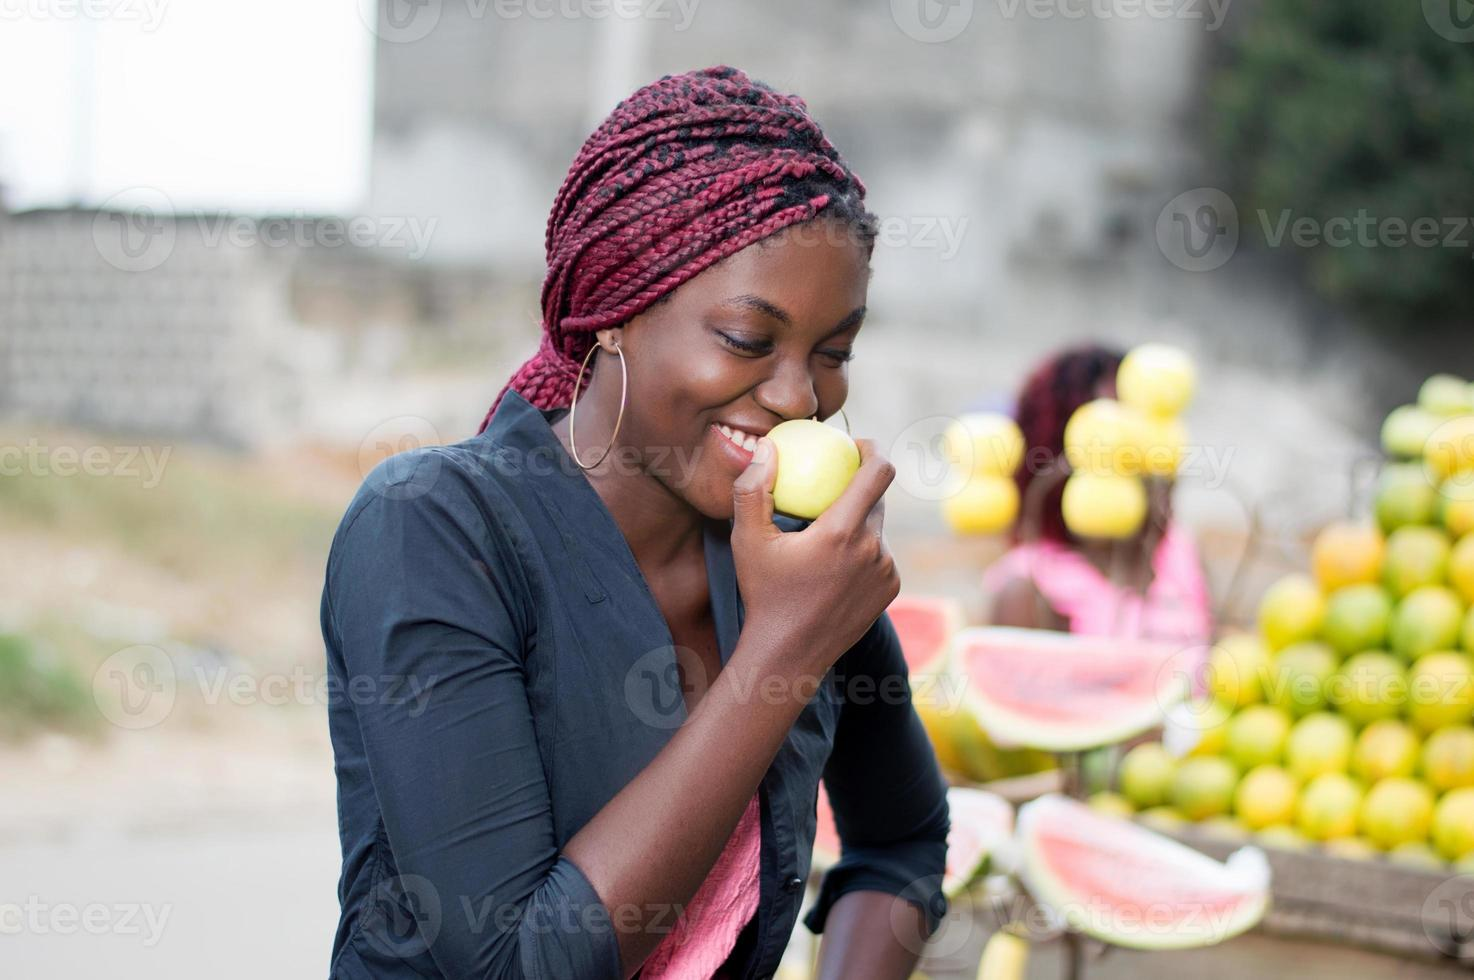 smiling young woman eating an apple. photo